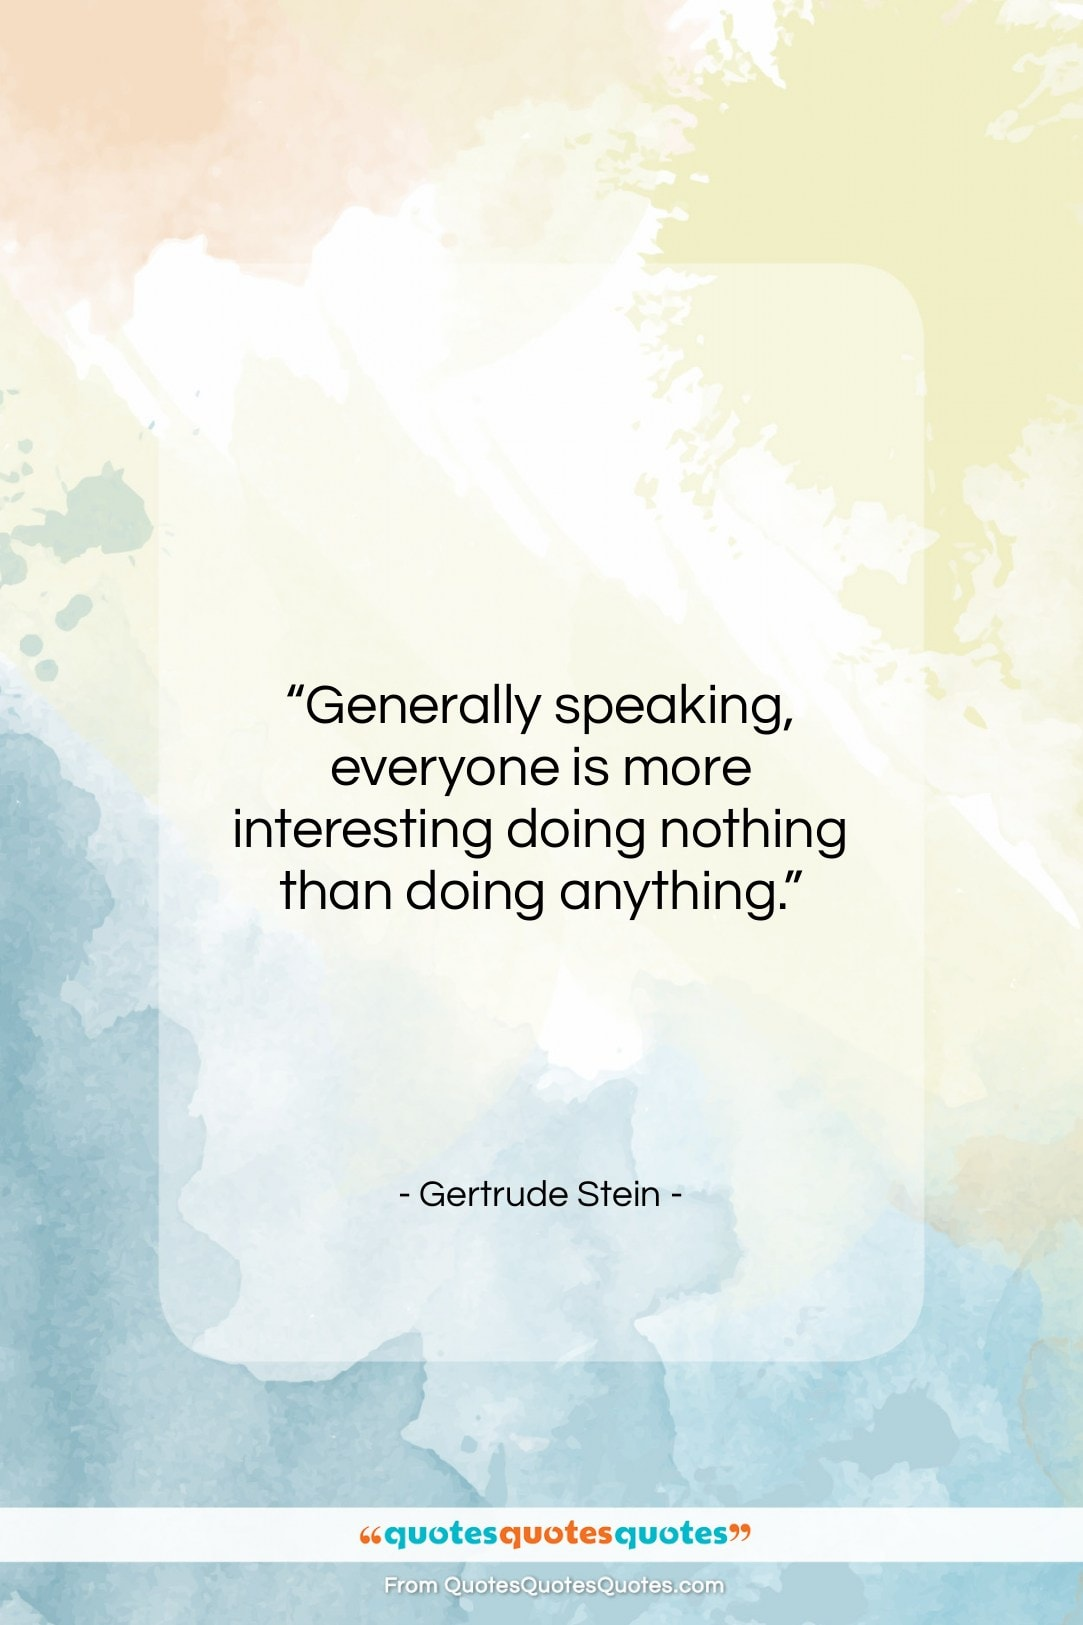 """Gertrude Stein quote: """"Generally speaking, everyone is more interesting doing…""""- at QuotesQuotesQuotes.com"""